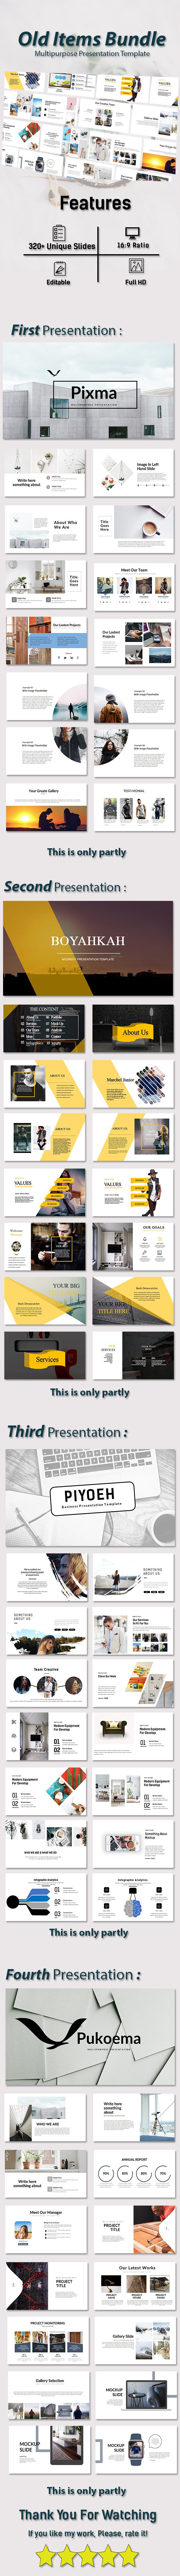 Old Items Bundle 4 in 1 - Finance PowerPoint Templates